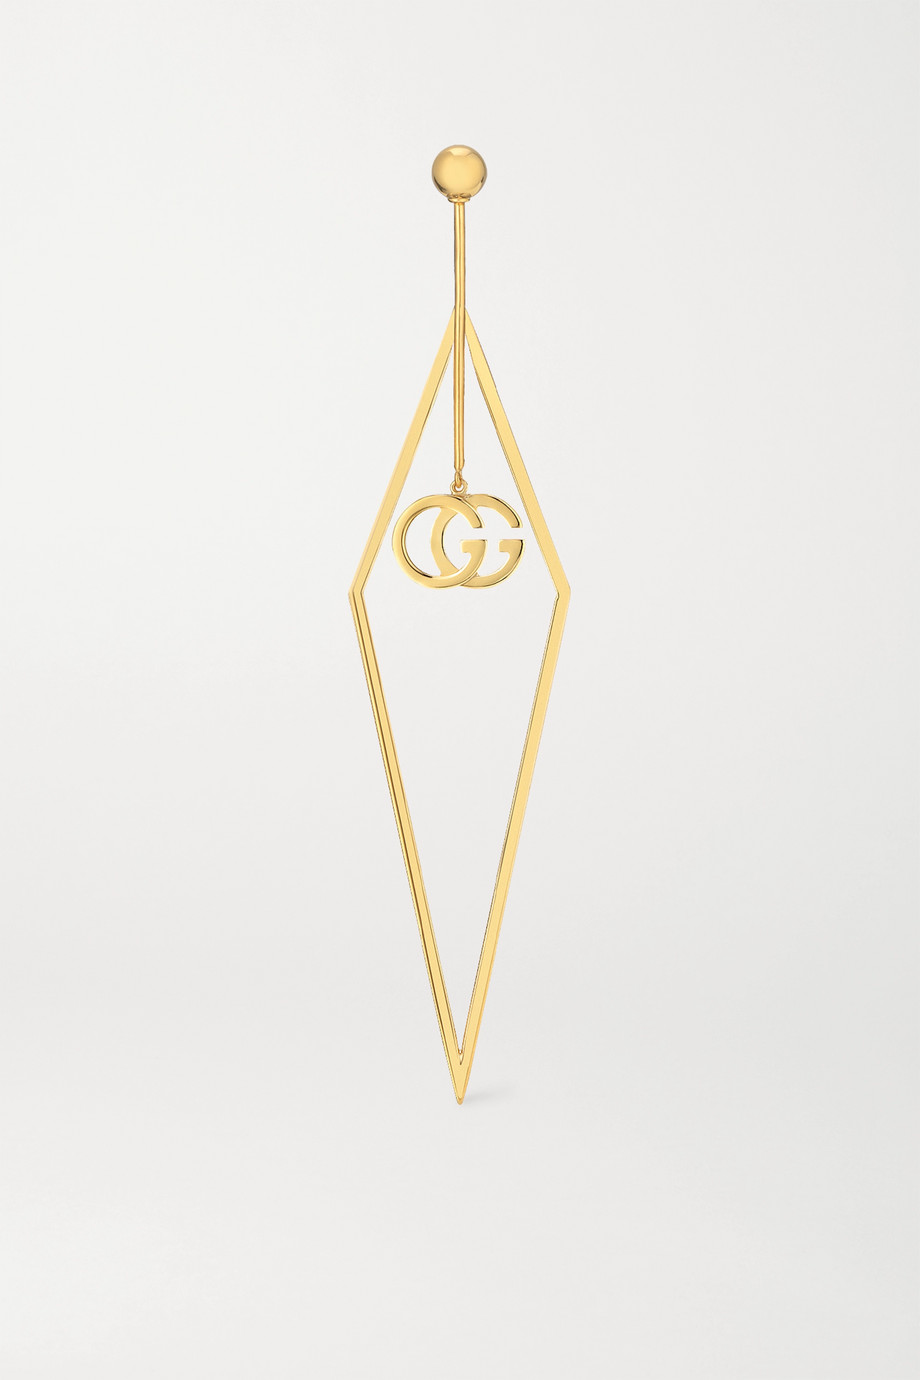 Gucci 18-karat gold earring